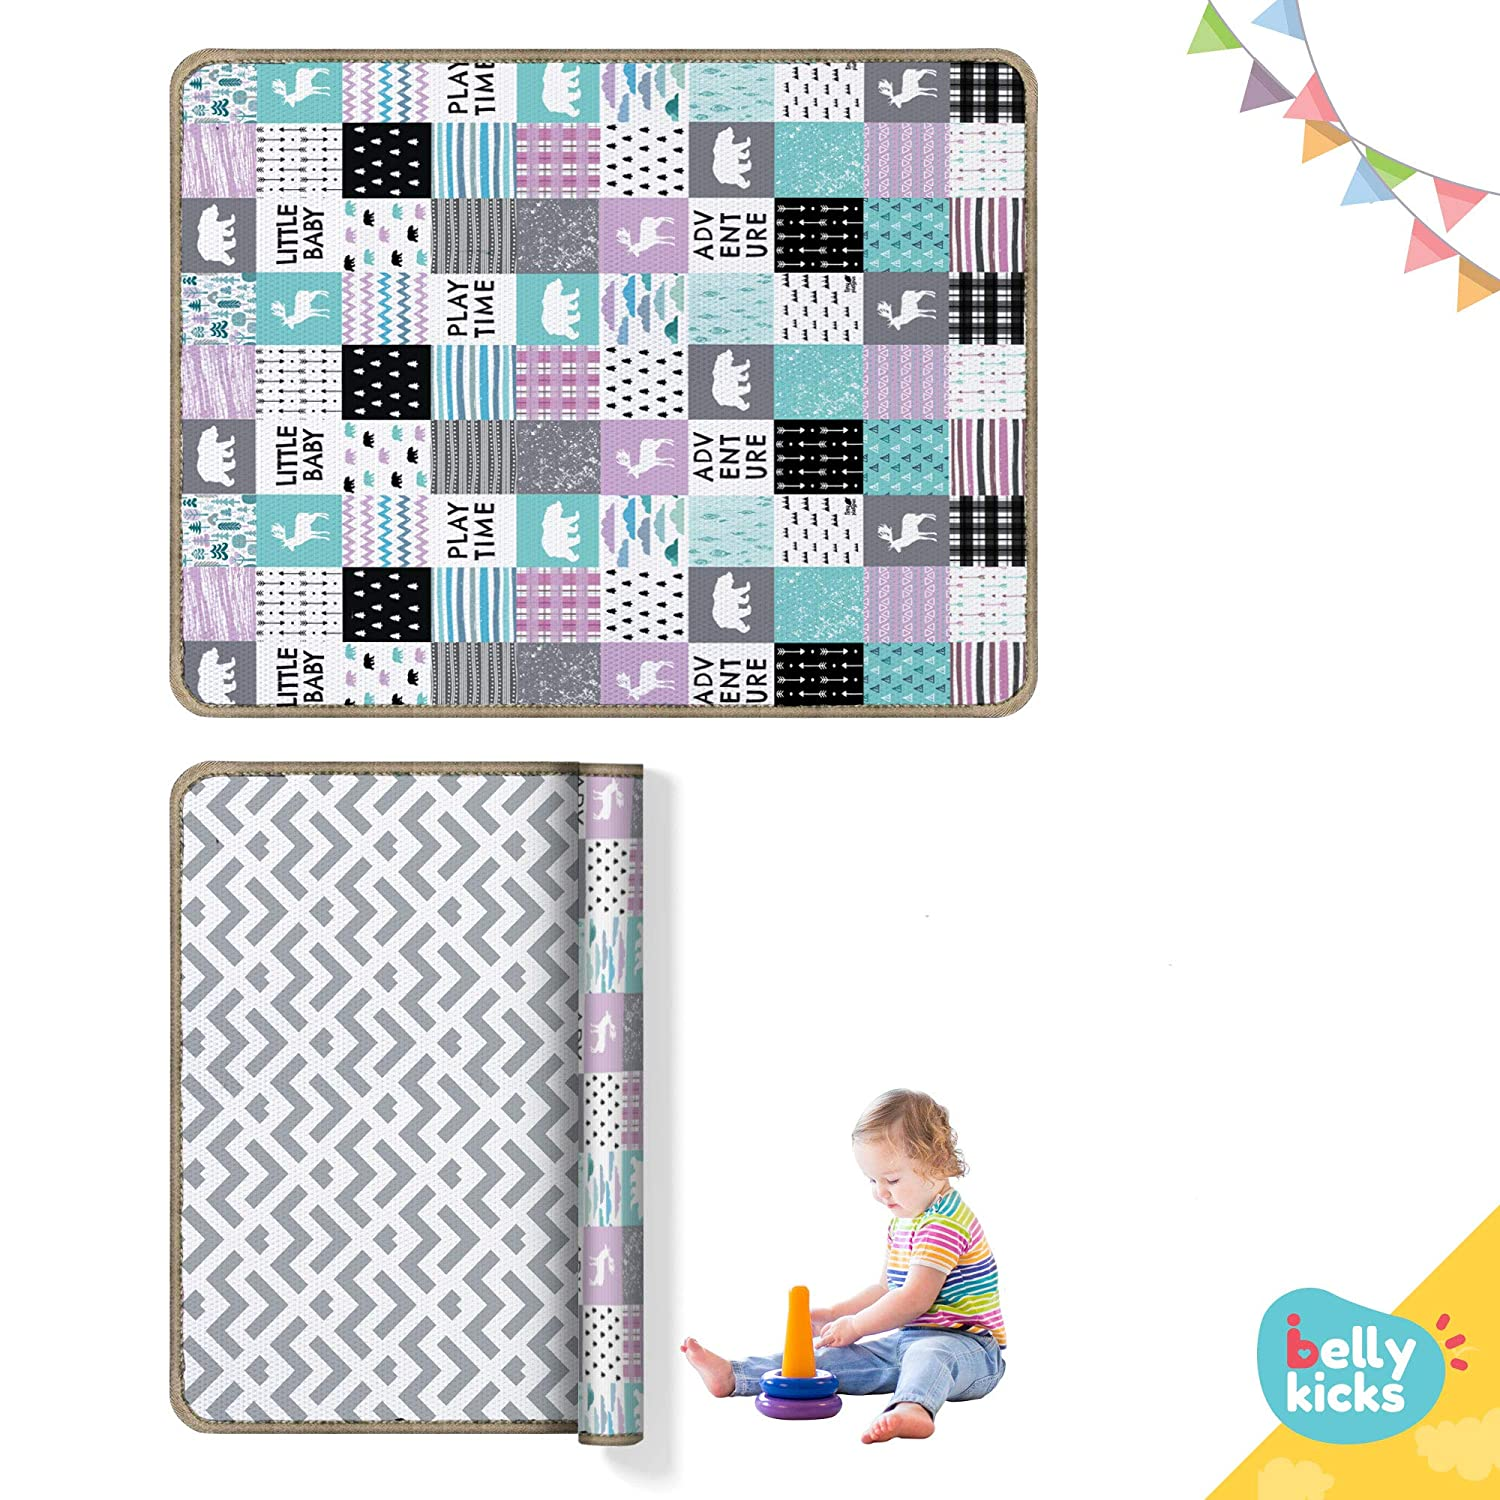 Baby Play Mat, 79 x 71 x 0.6 Inches, Waterproof and Anti-Slippery Tummy Time Floor Mats, Double Sided & Reversible Playmat for Infants, Colorful Side for Playing and Elegant for Home, Ships Rolled Belly Kicks